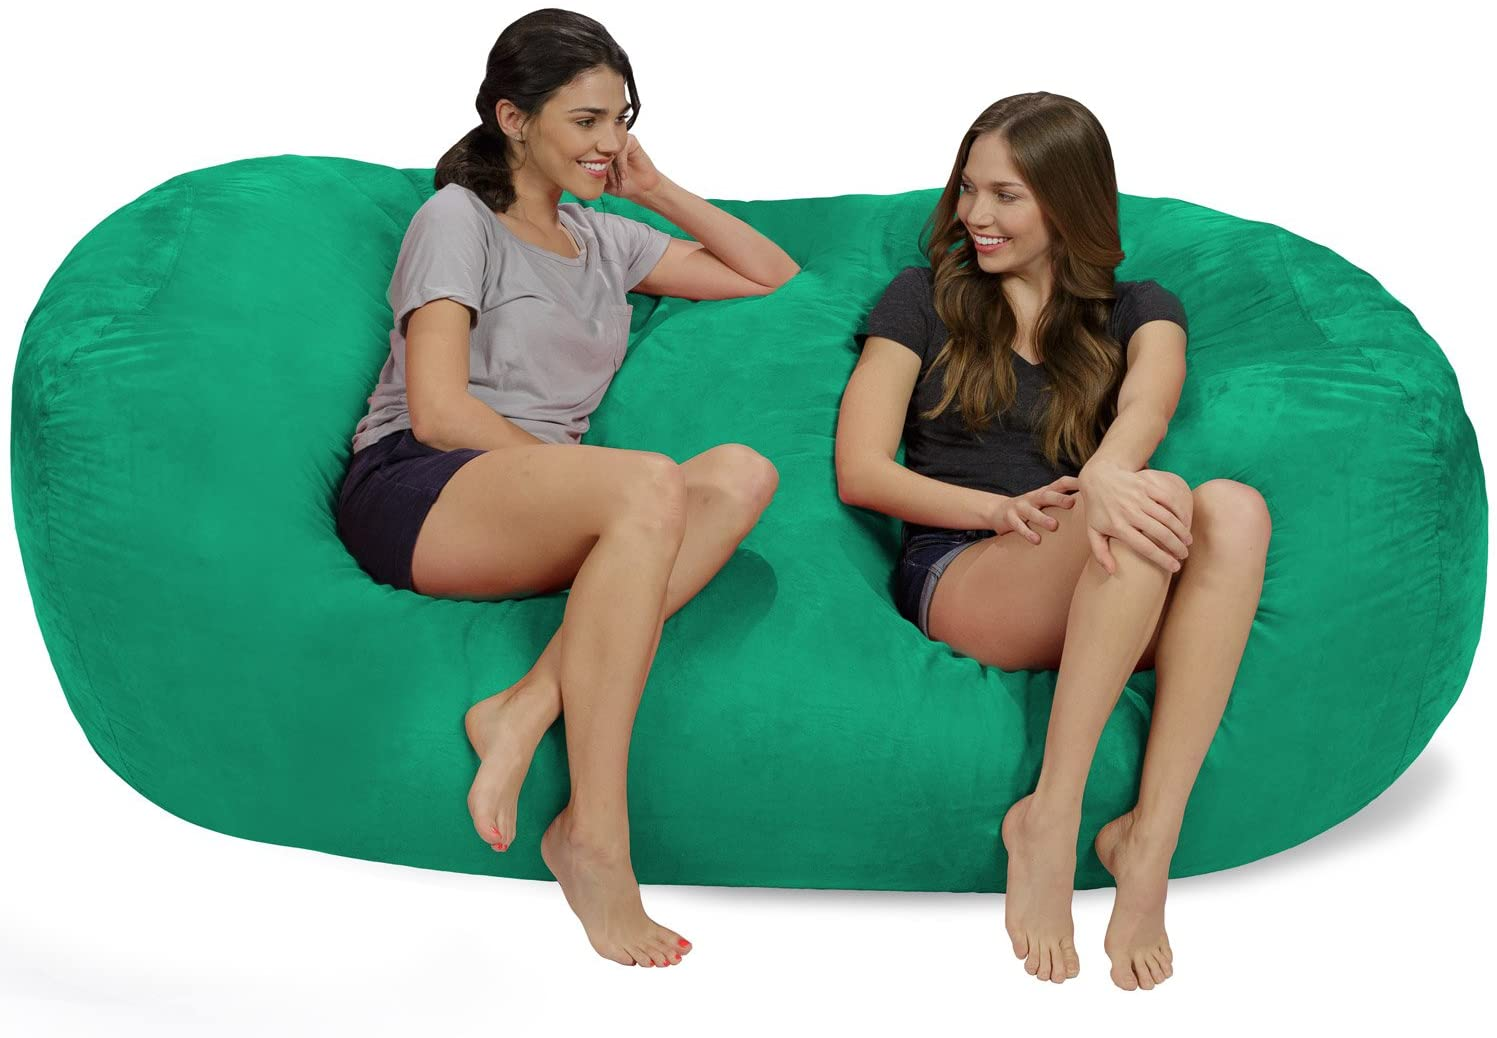 Chill Sack Bean Bag Chair: Huge 7.5' Memory Foam Furniture Bag and Large Lounger - Big Sofa with Soft Micro Fiber Cover - Tide Pool